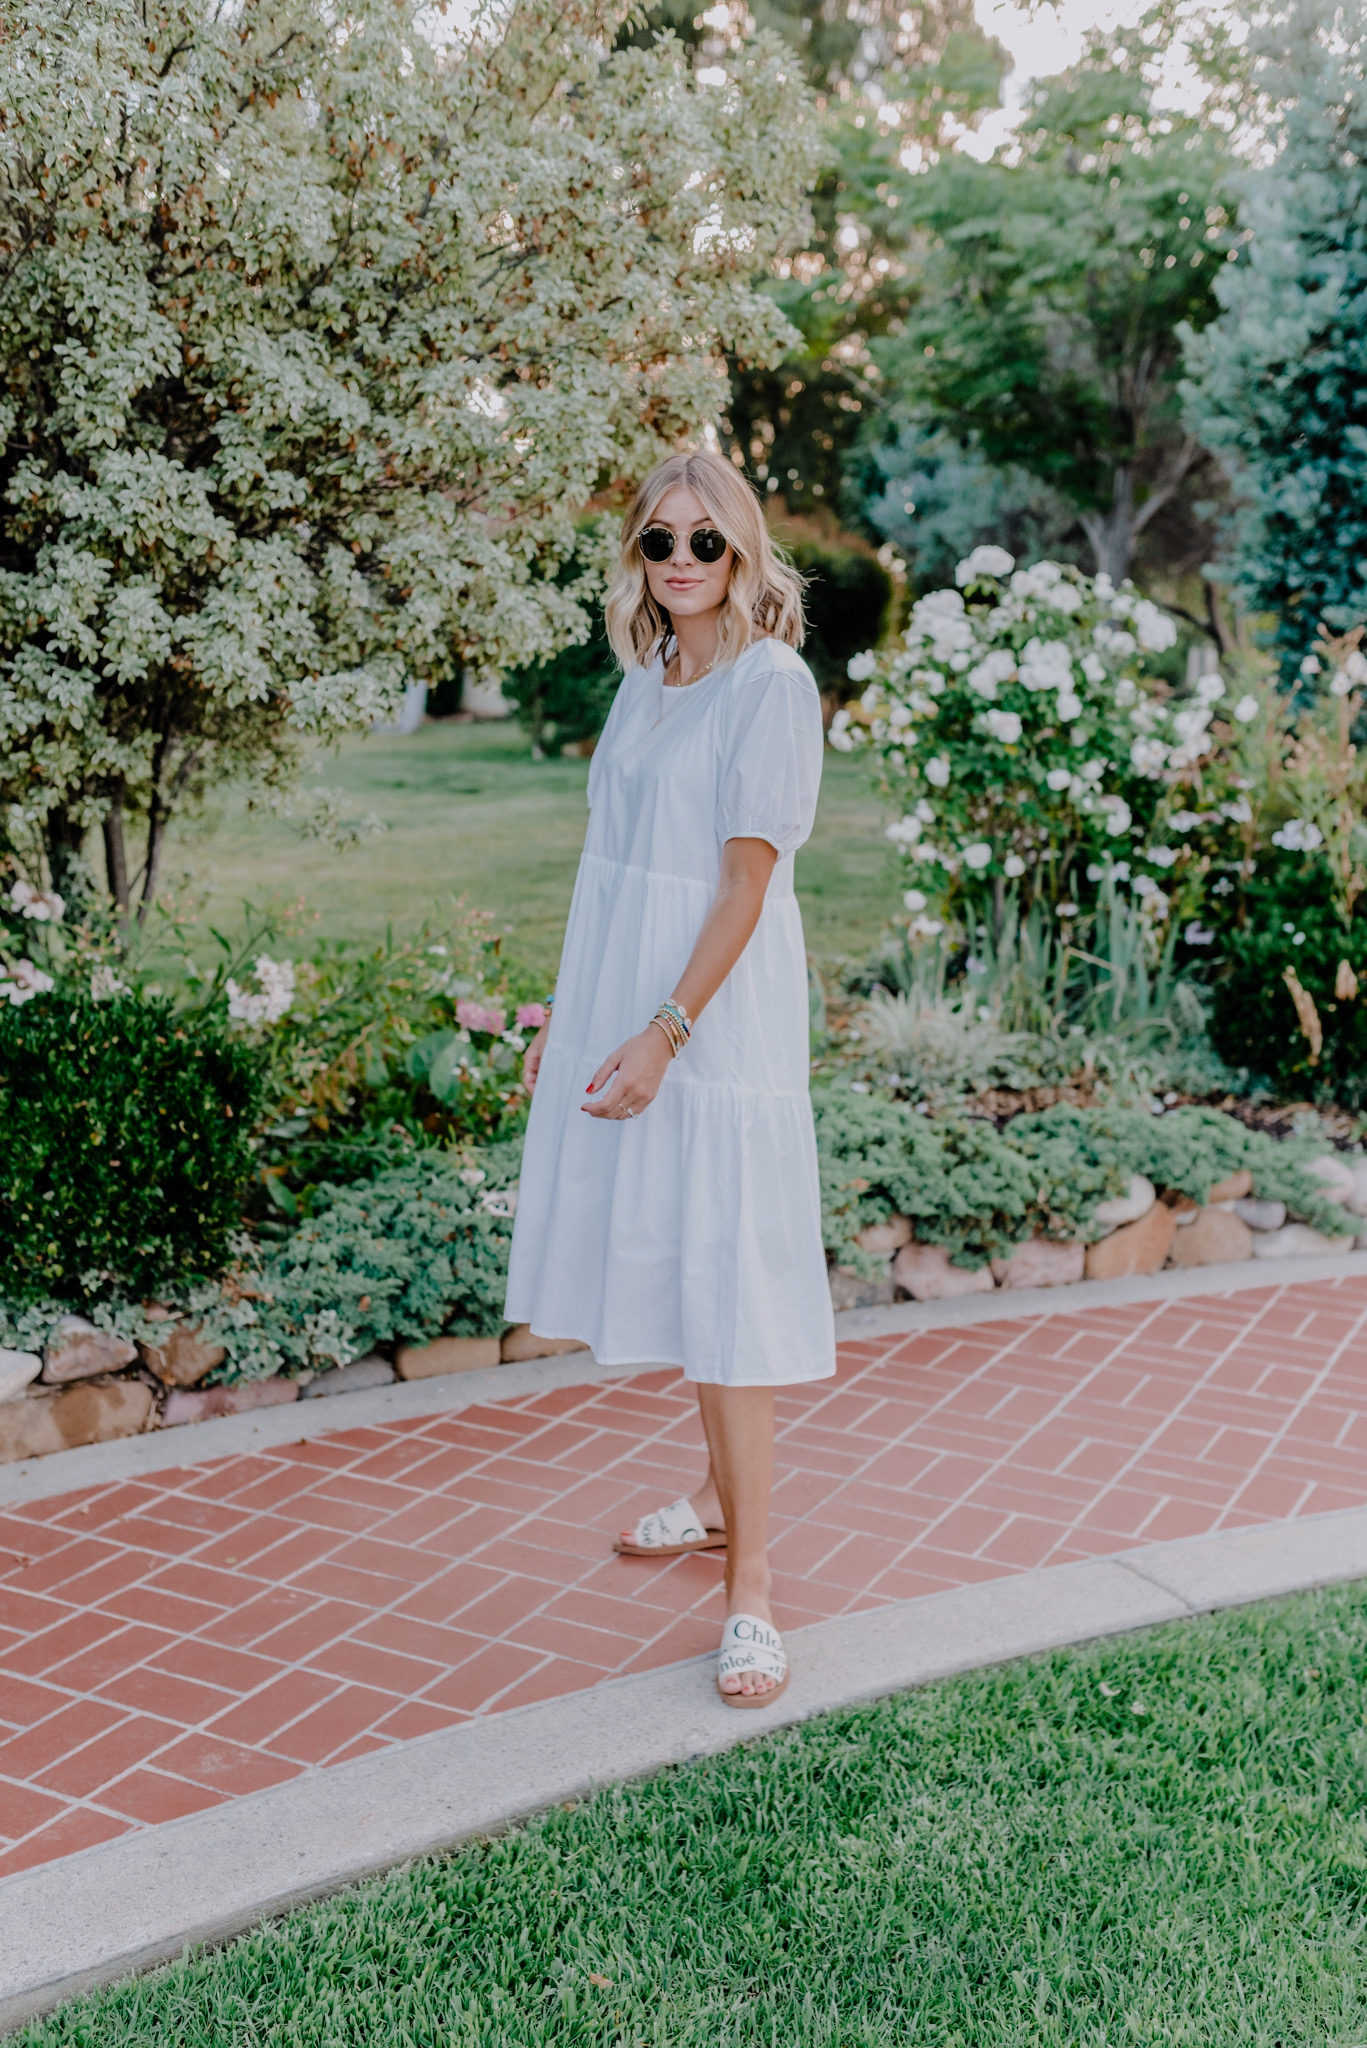 Nordstrom Anniversary Sale by popular San Diego fashion blog, Navy Grace: image of a woman wearing a Everlane The Tiered Cotton Dress, Nordstrom Logo Slide Sandal CHLOÉ, and Ray-Ban sunglasses.